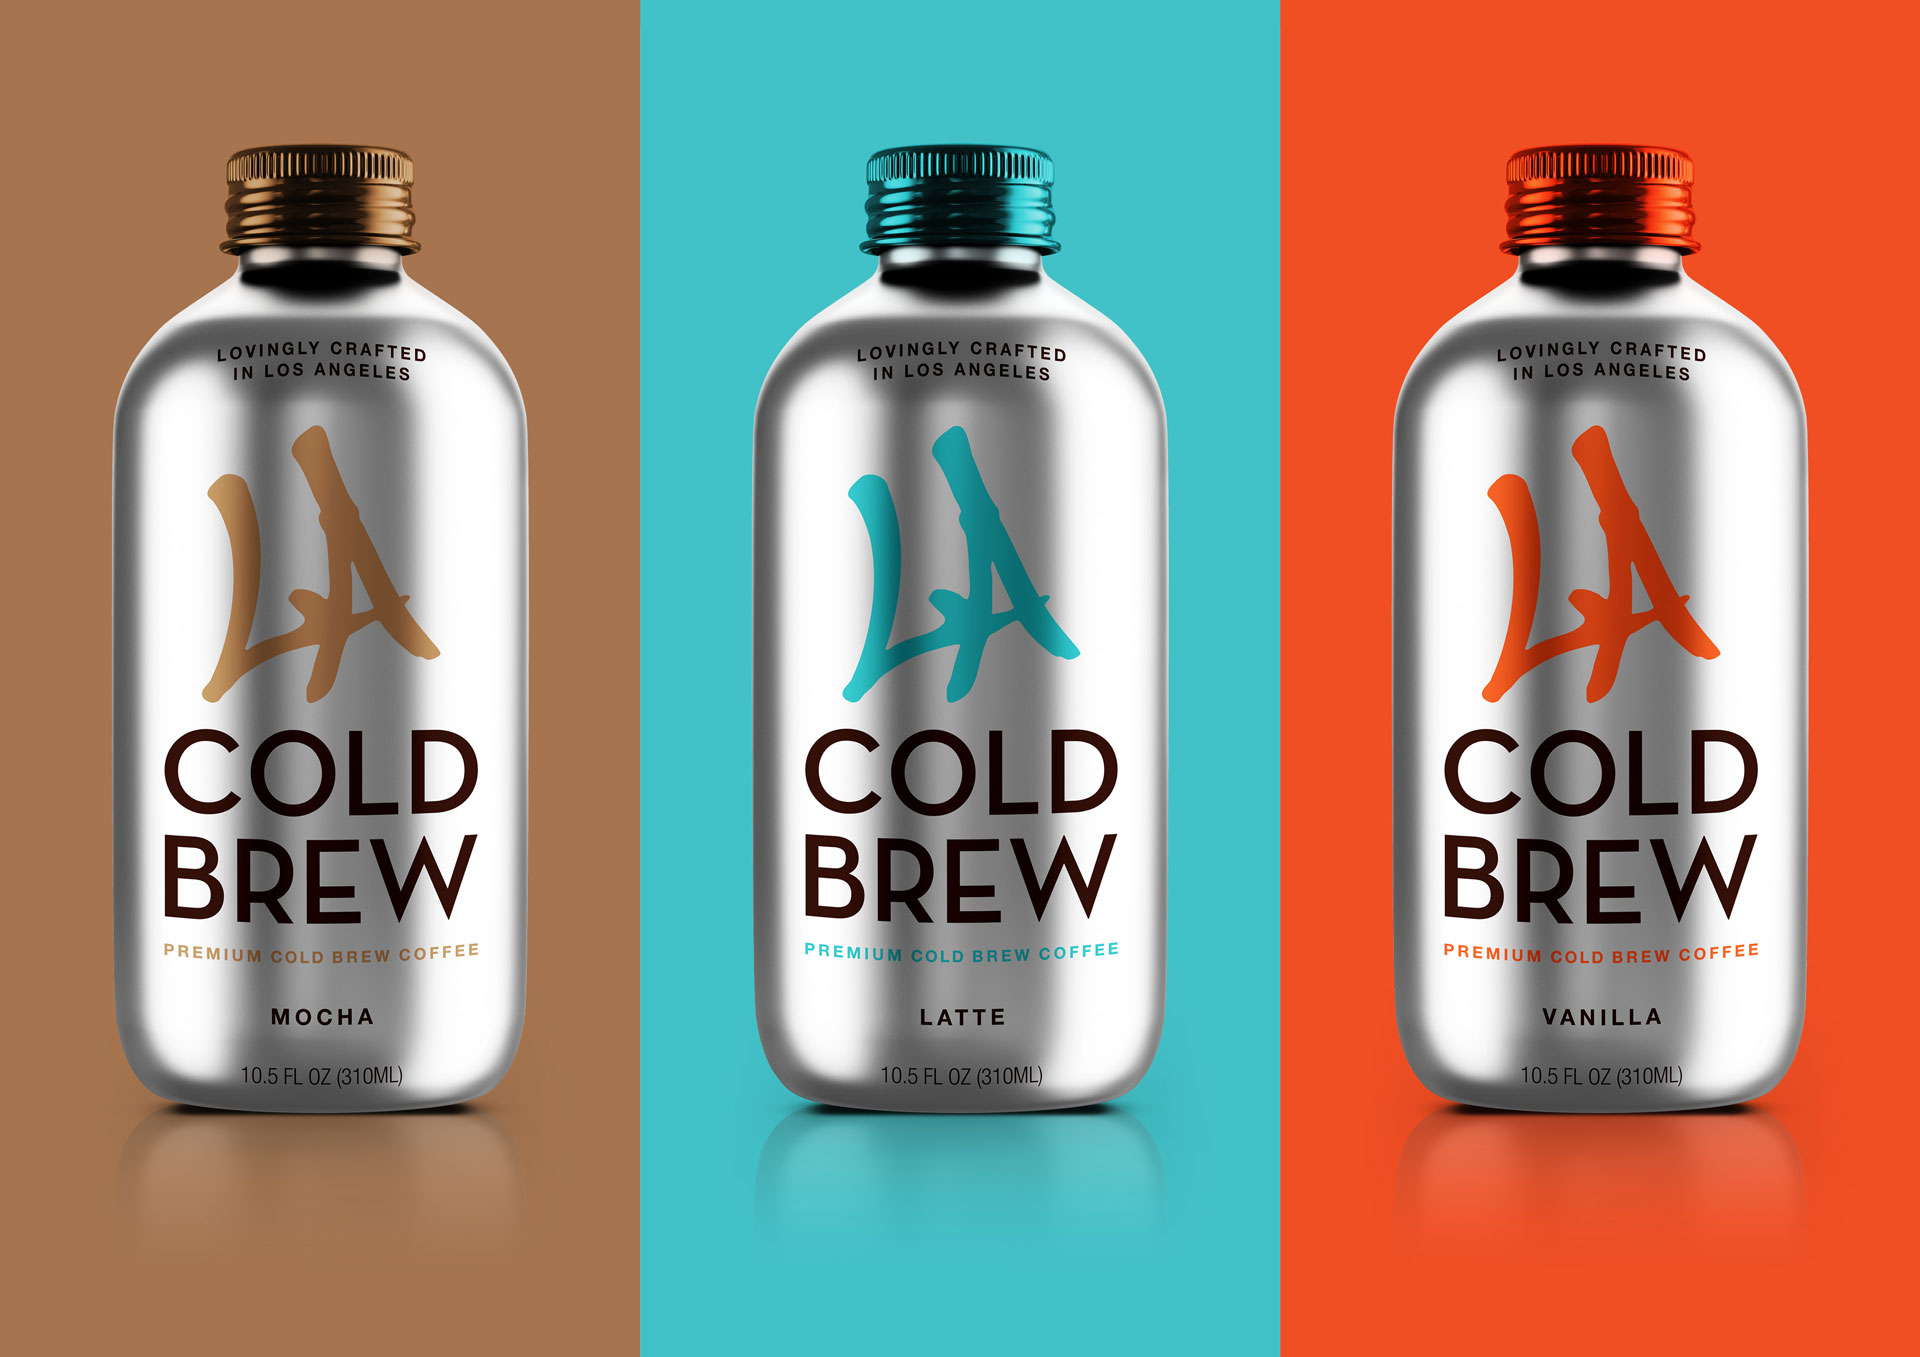 la-cold-brew-packaging-5